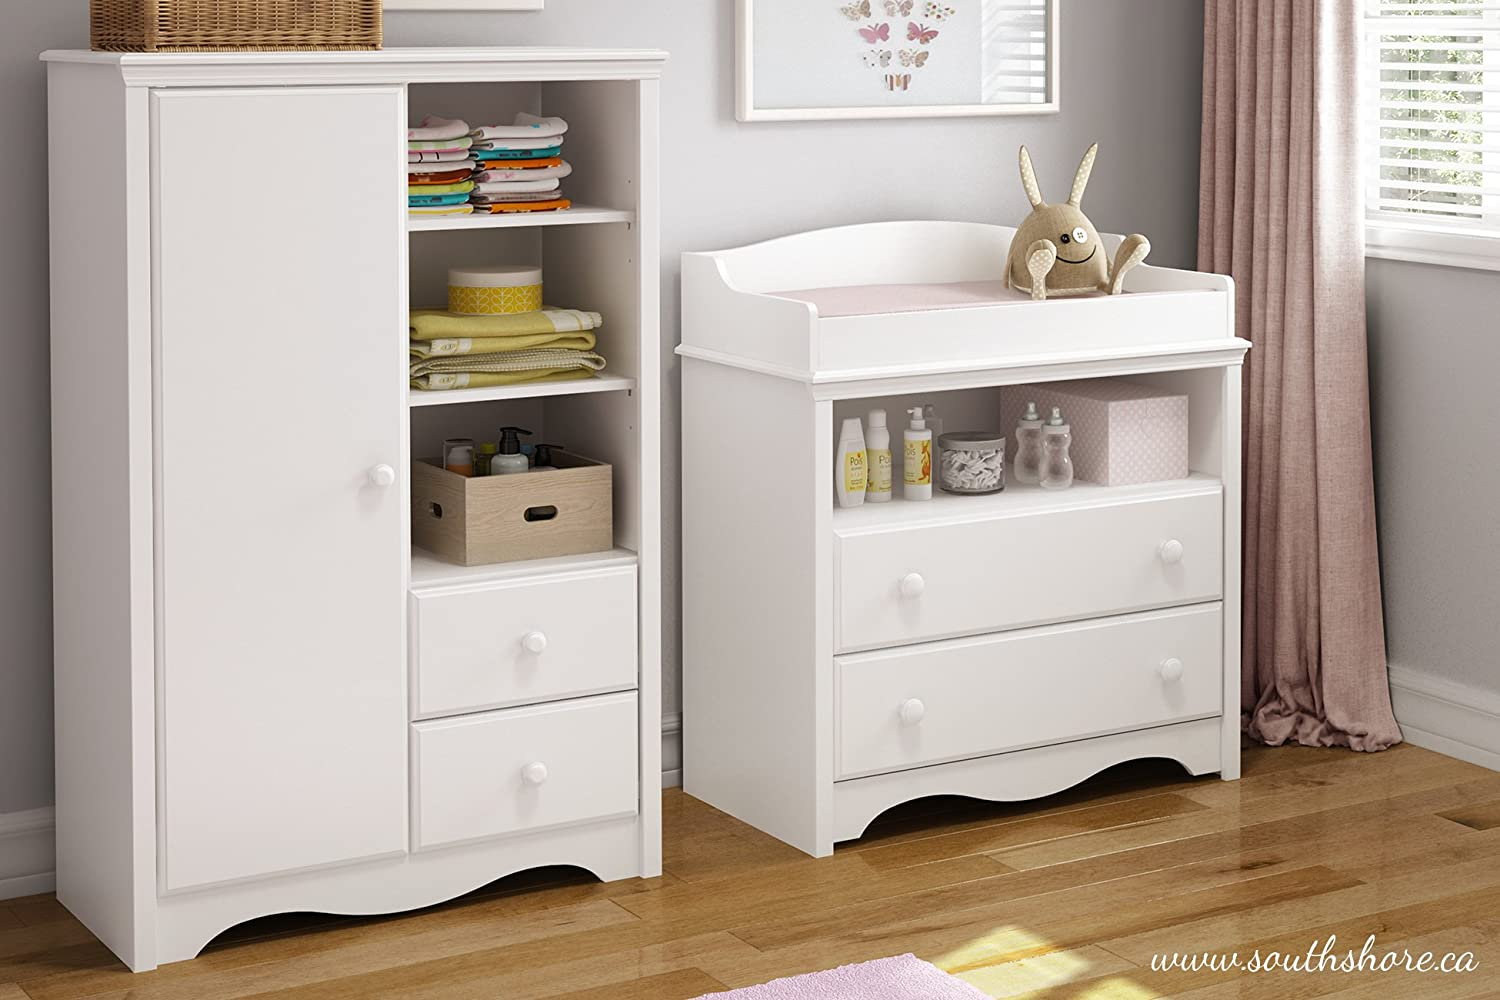 Amazon.com : South Shore Heavenly Armoire With Drawers, Pure White : Baby